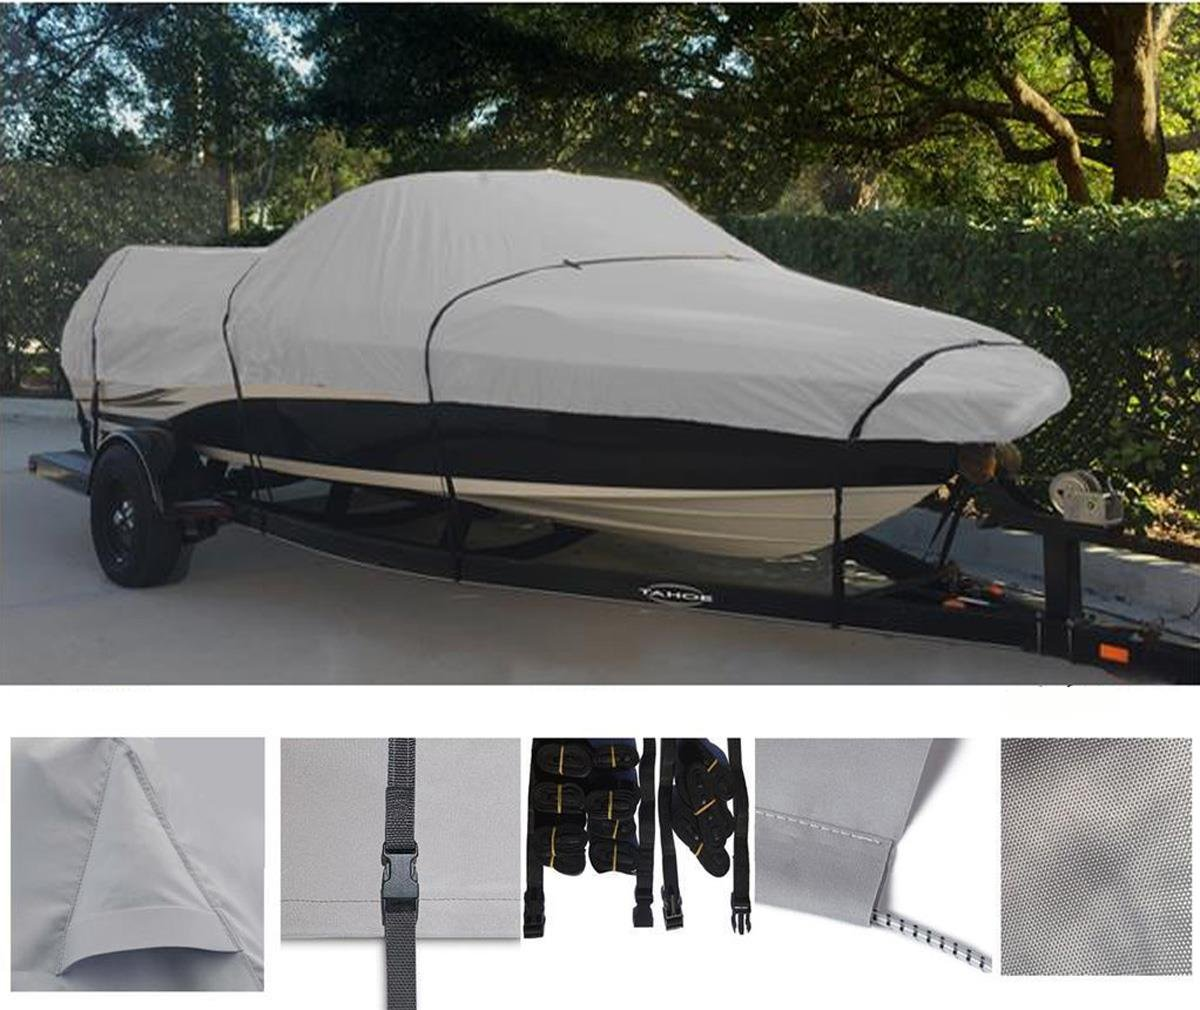 GREY, STORAGE, TRAVEL, MOORING BOAT COVER FOR SEA DOO Sportster 4-TEC 2003 2004 2005 03 04 05 by SBU